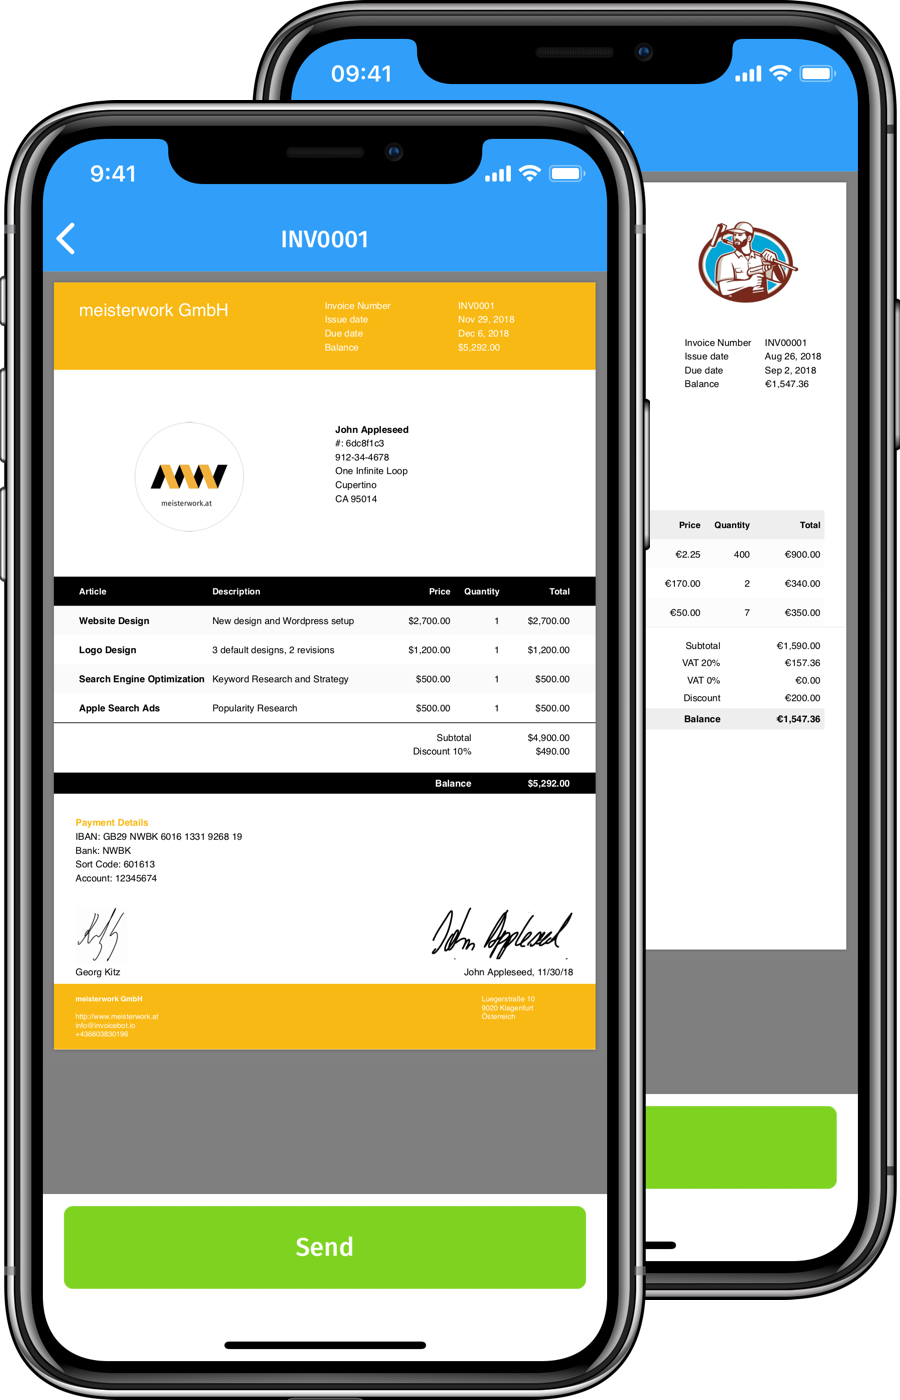 iPhone frames showing generated pdf invoices with InvoiceBot